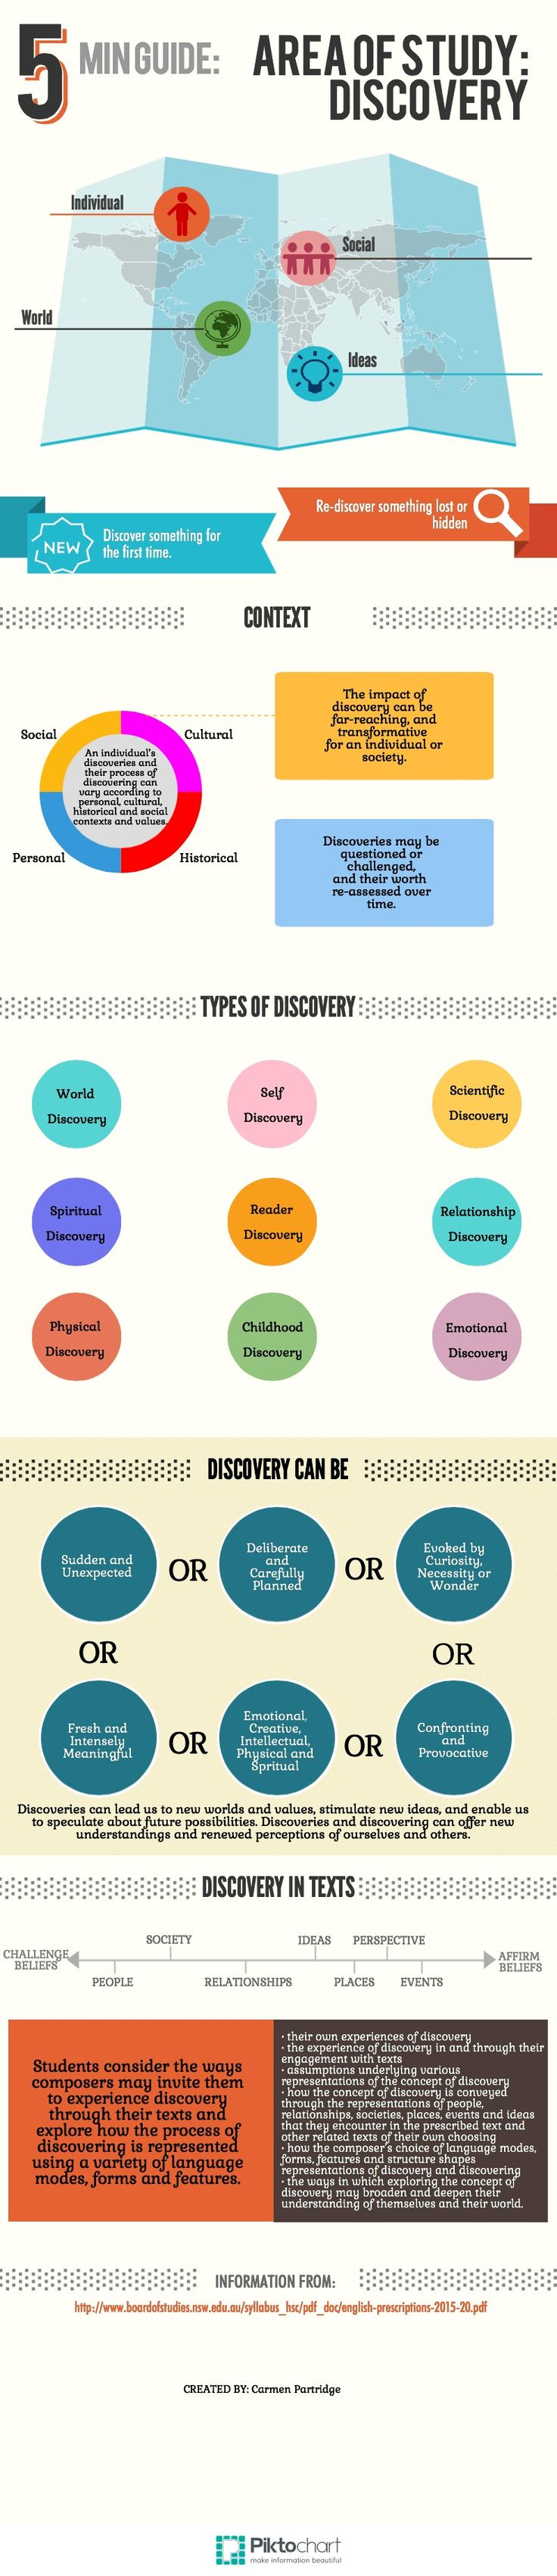 AOS Discovery | Piktochart Infographic Editor